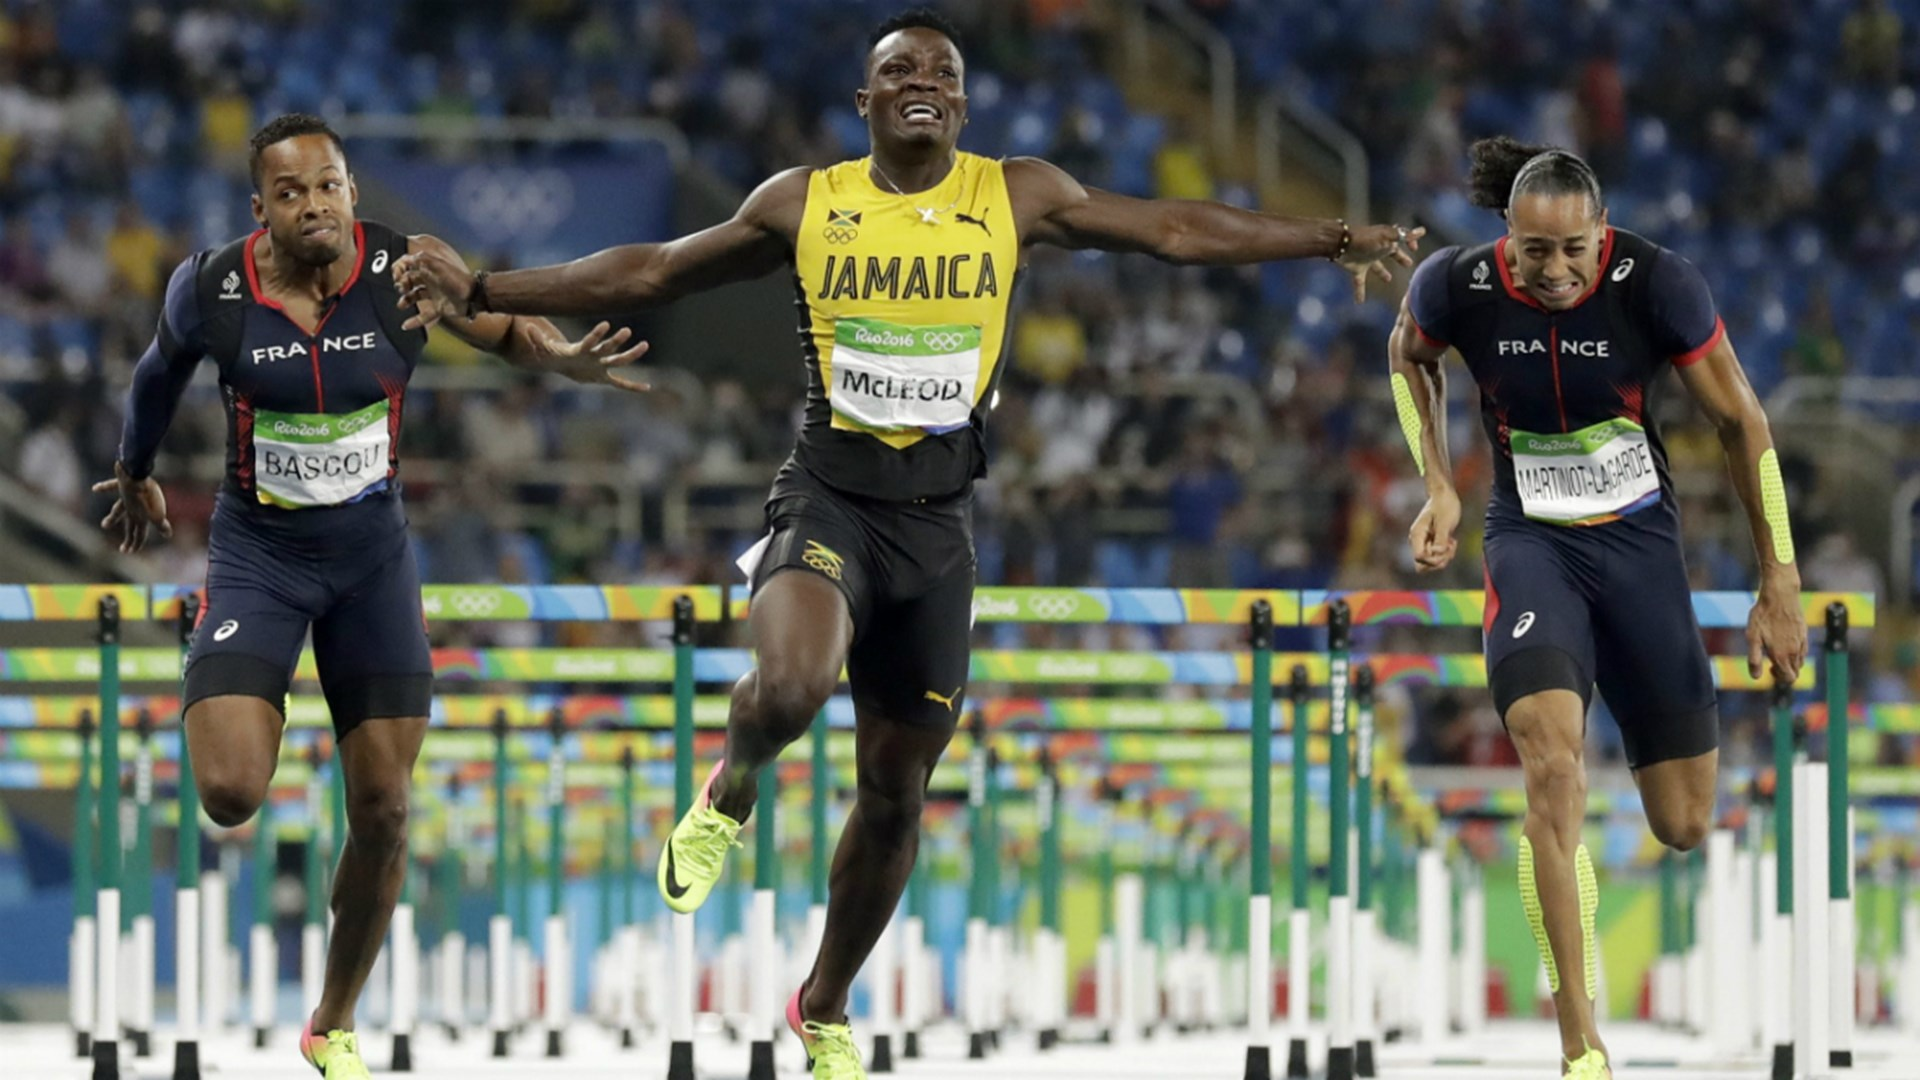 Jamaica's Omar McLeod (centre) reacts after winning gold in the Men's 110m hurdles final flanked by the French pair of Dimitri Bascou (left) and Pascal Martinot-Lagarde inside the Olympic Stadum last night. (Bryan Cummings)